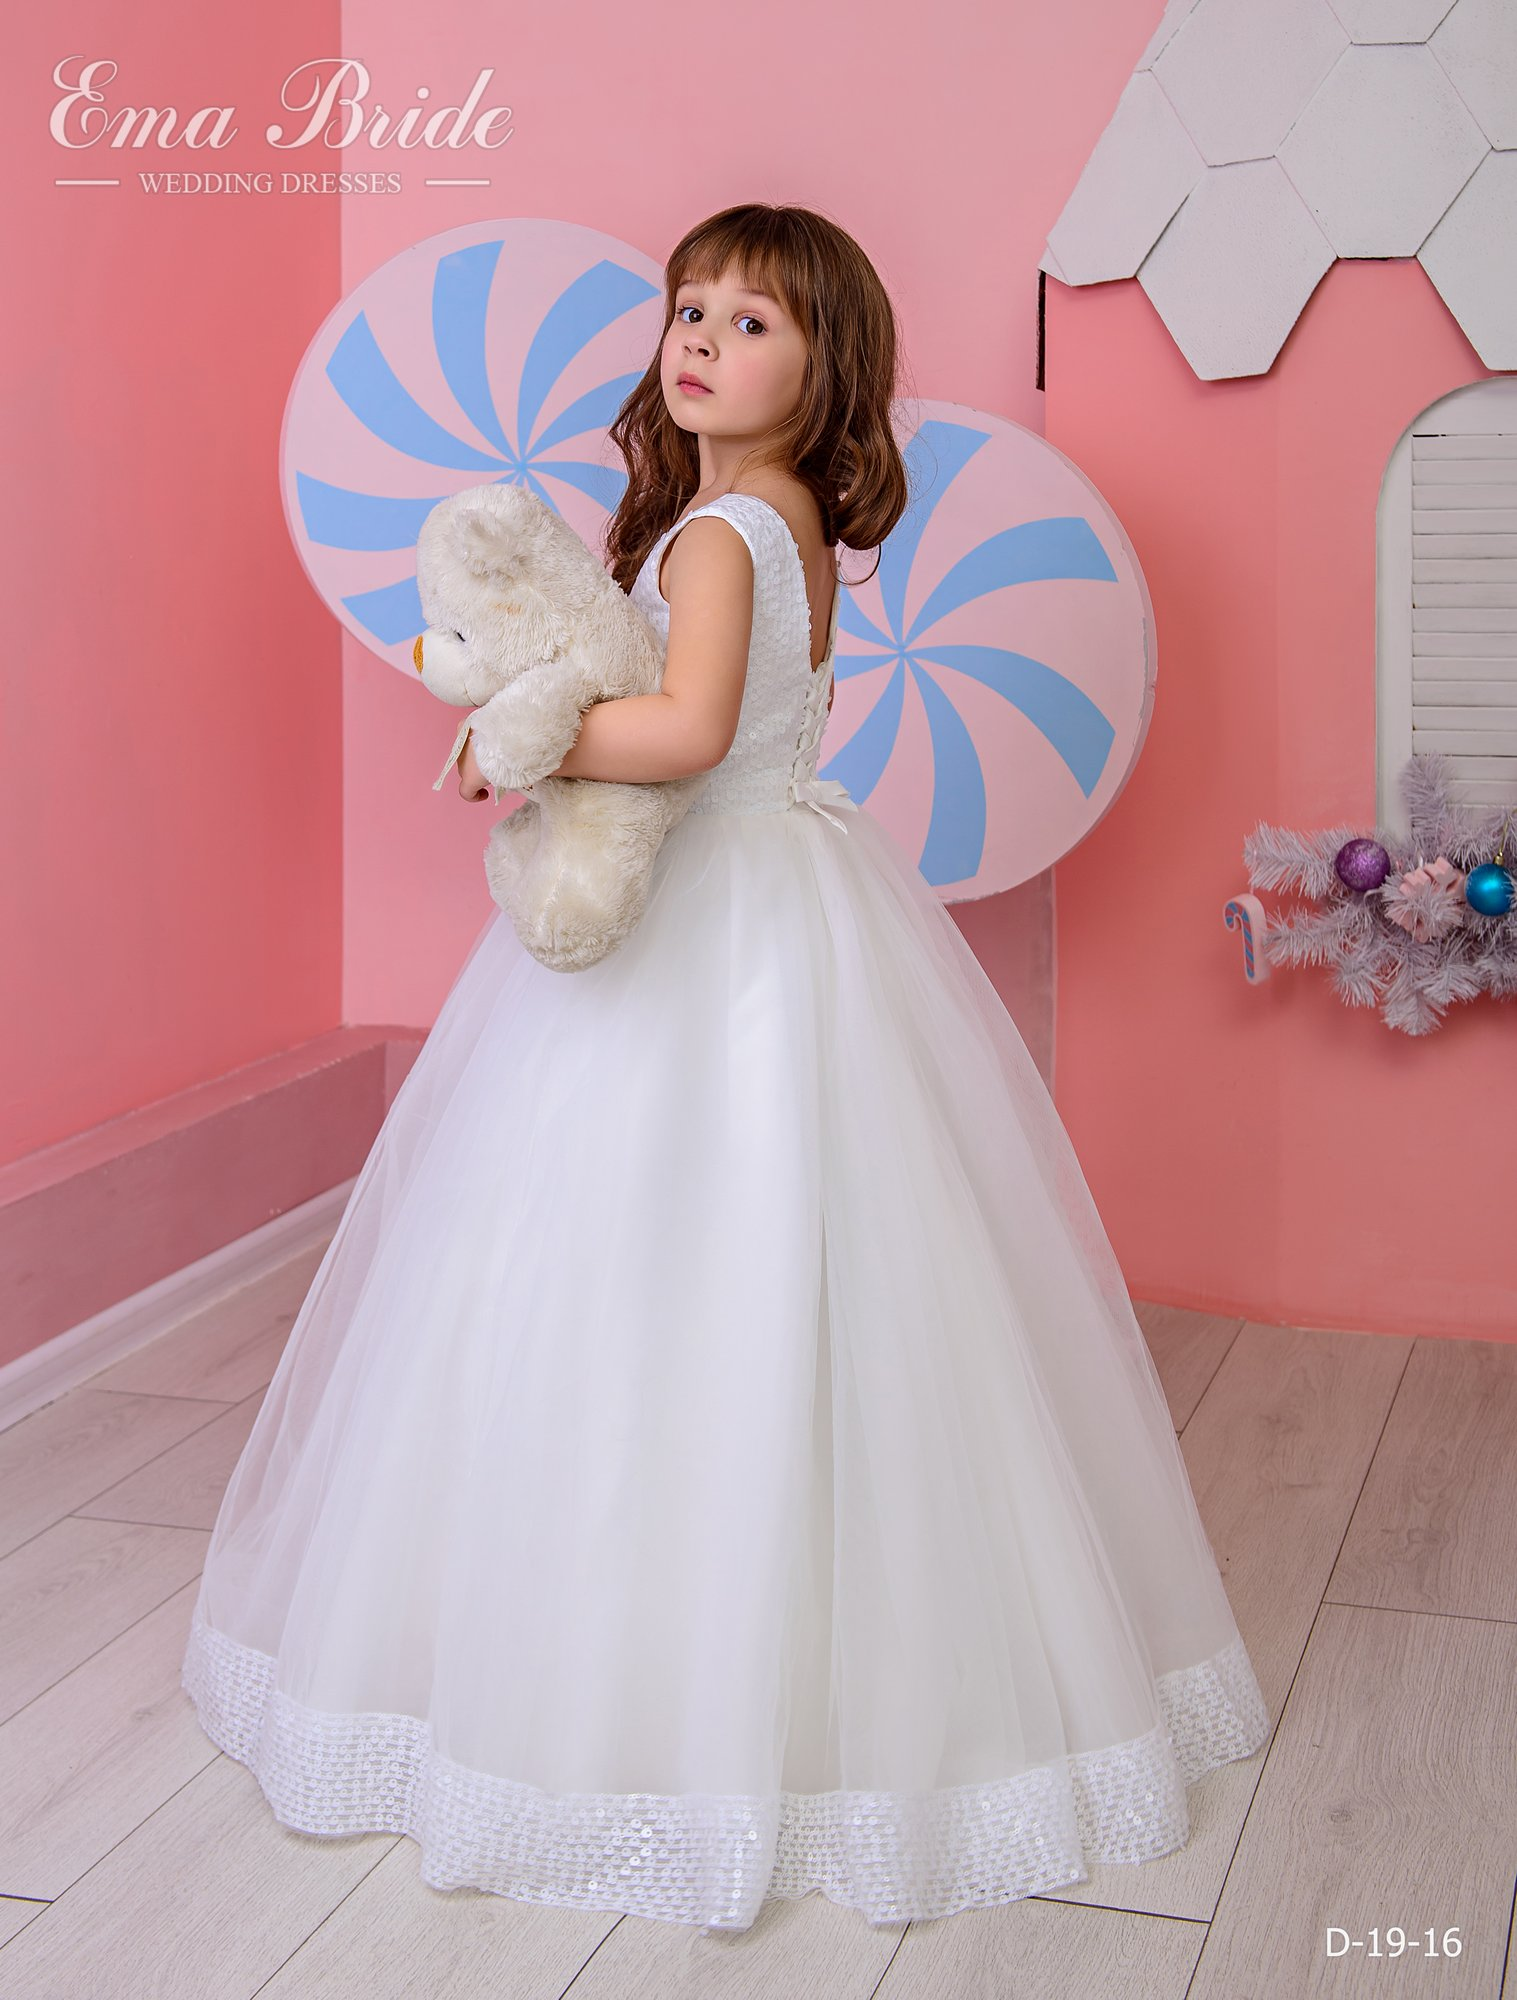 Children's dress by EmaBride D-19-16 2019-2